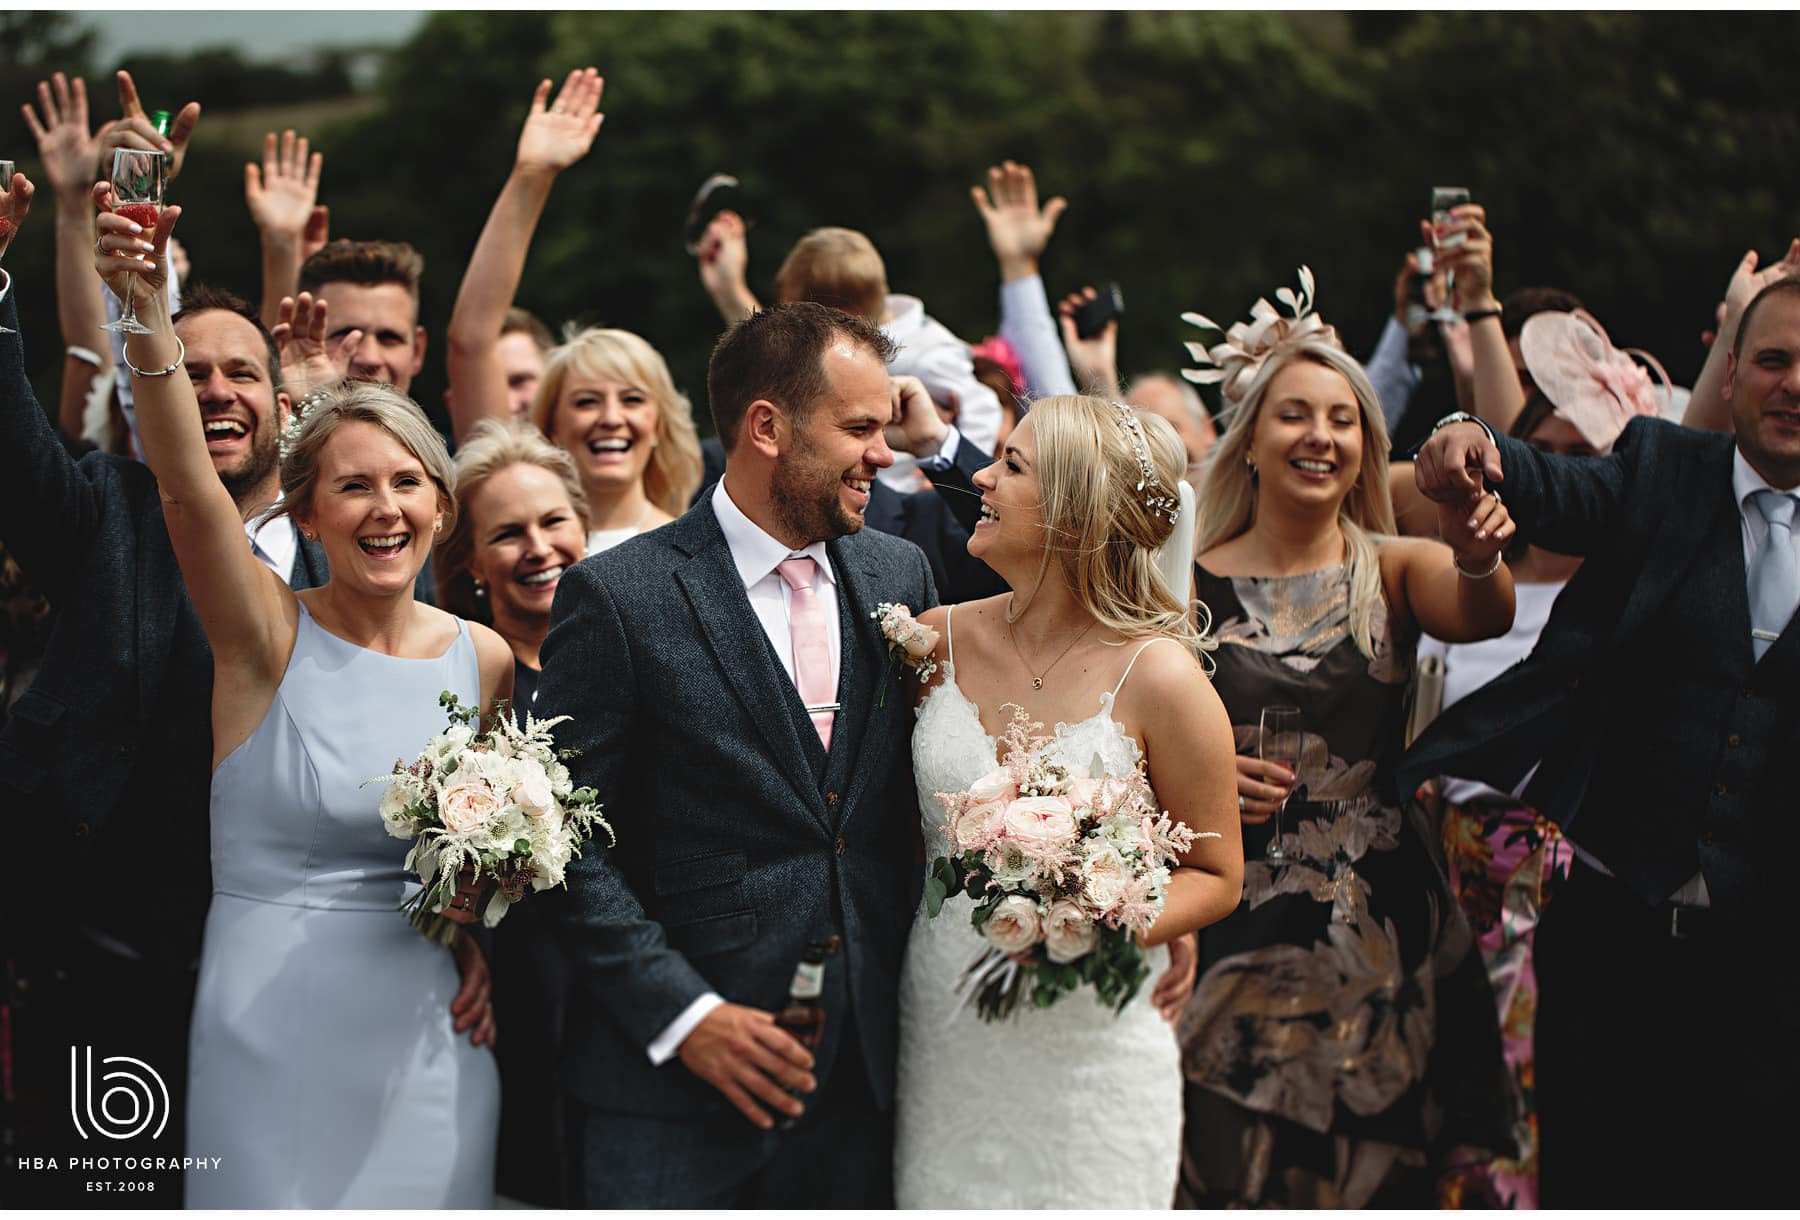 Tipi_Outdoor_Summer_Wedding_Photos_in_Ashbourne_by_Derbyshire_HBA_Photography_Photographers